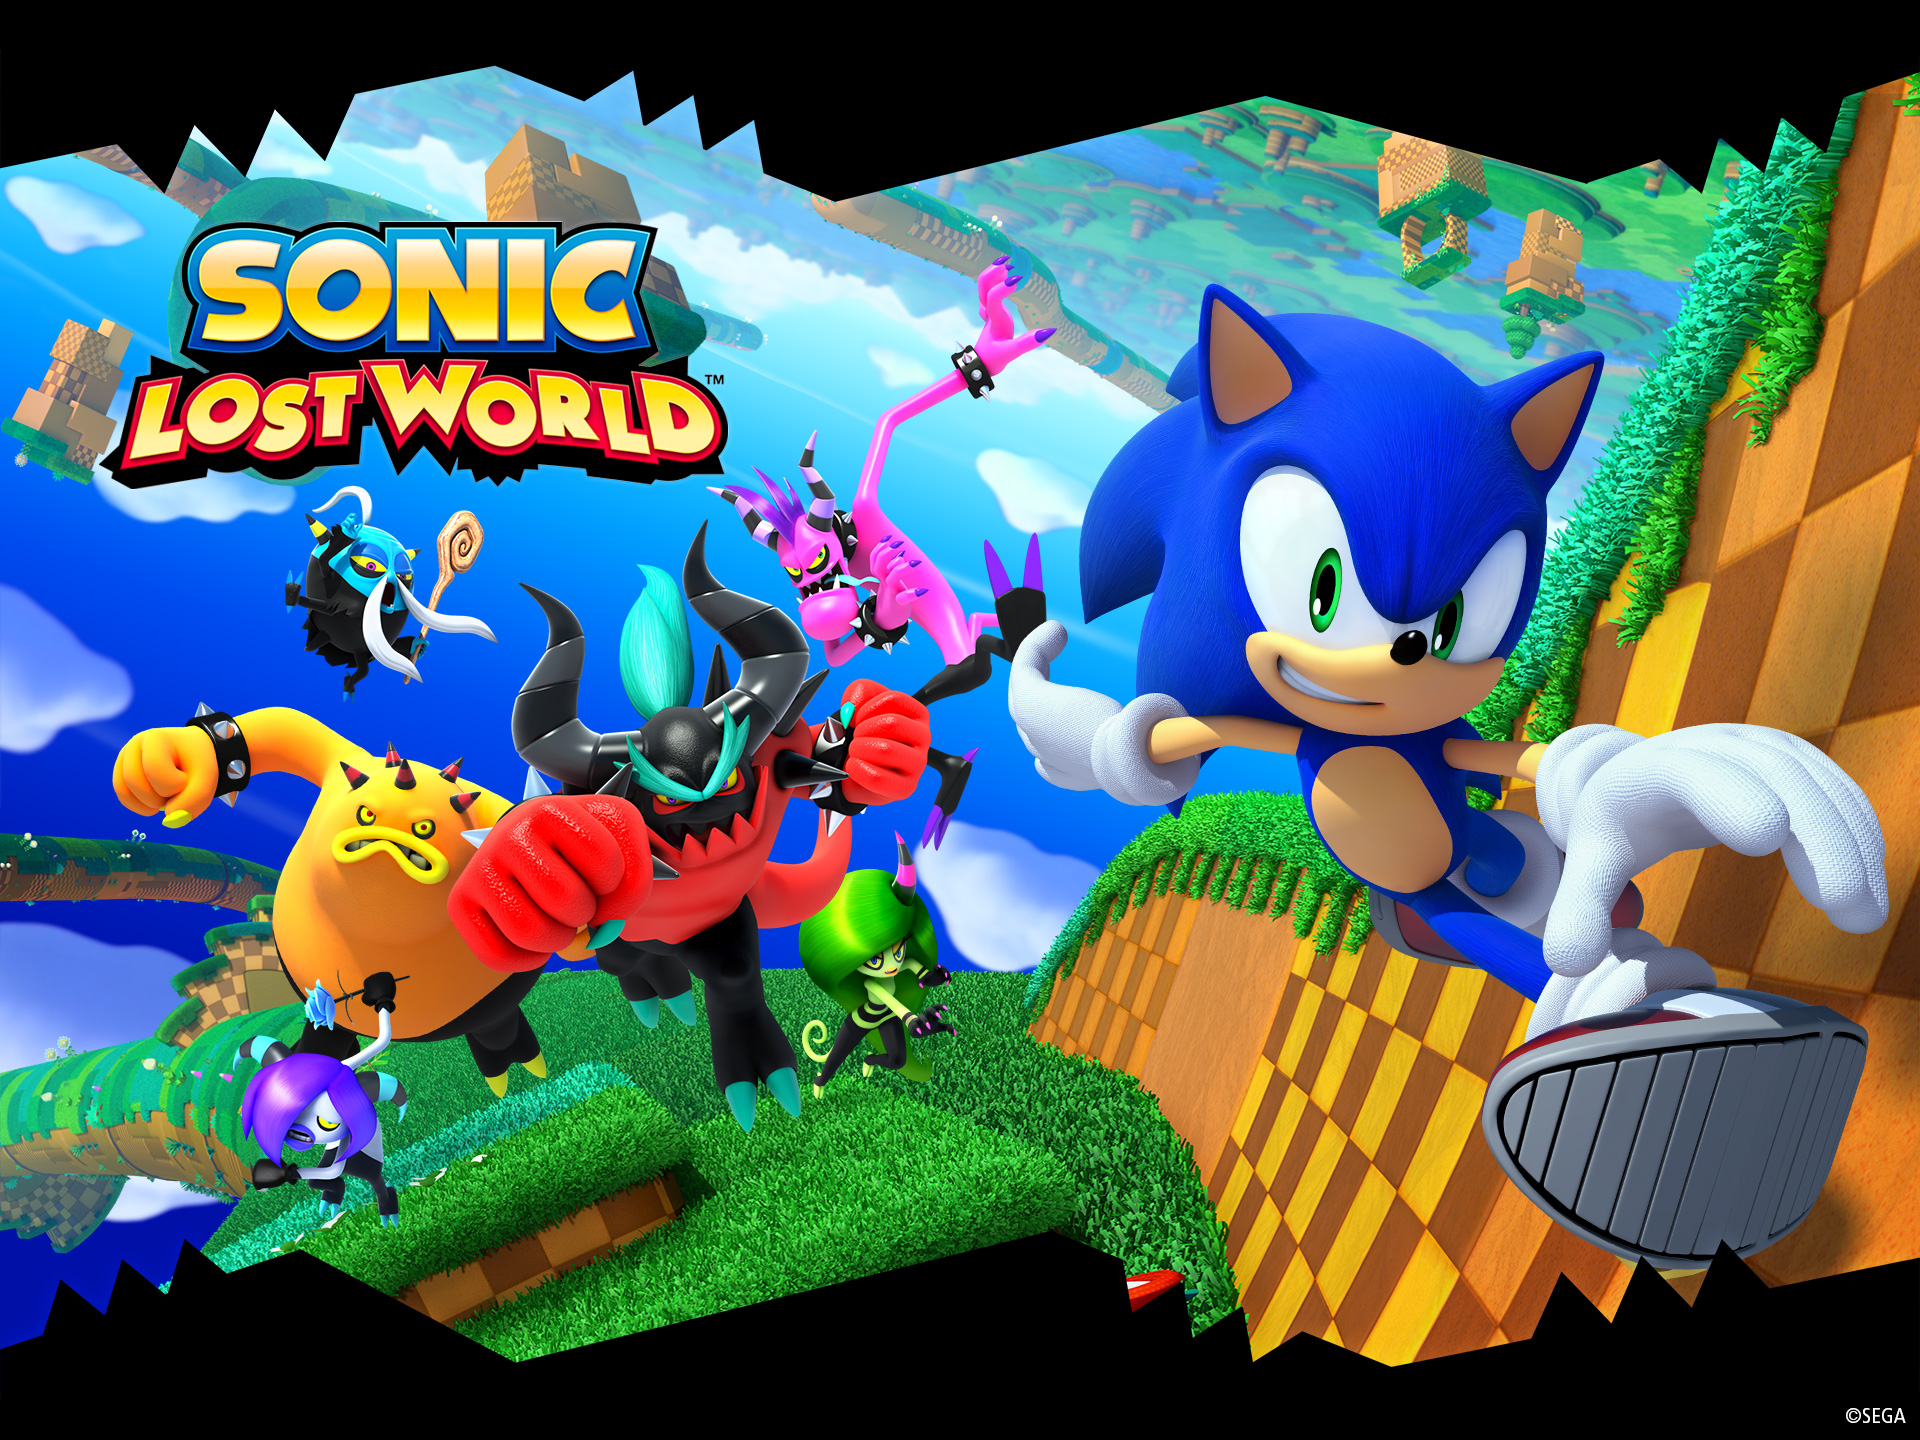 Wallpapers Hd Sonic World Lost